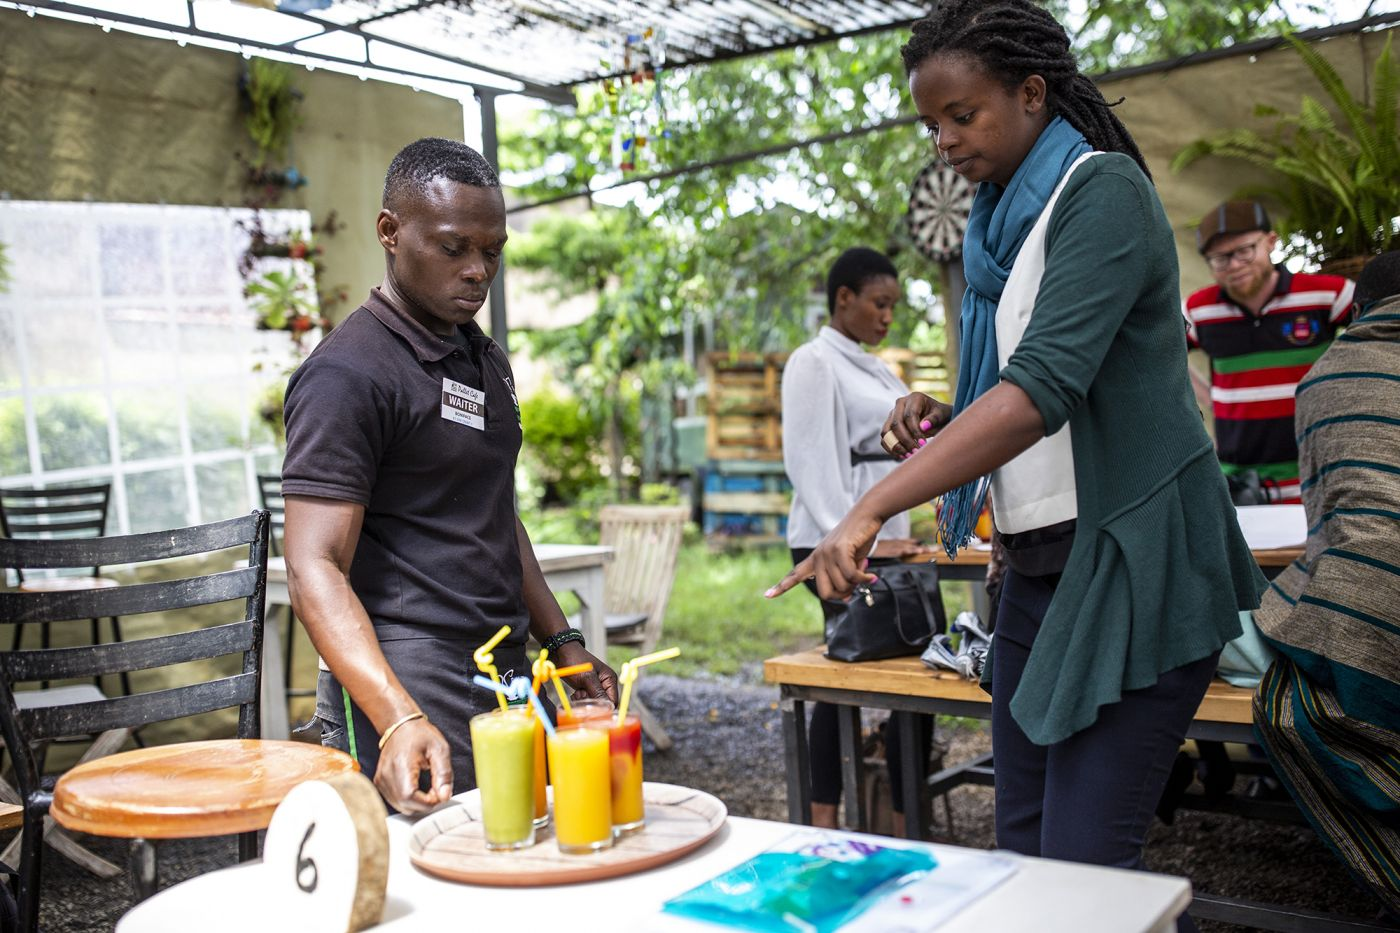 A young person is being trained on how to serve tables in a restaurant. He is a participant of Inclusive Futures, a six-year initiative funded by UK aid to promote disability inclusion in the workplace.